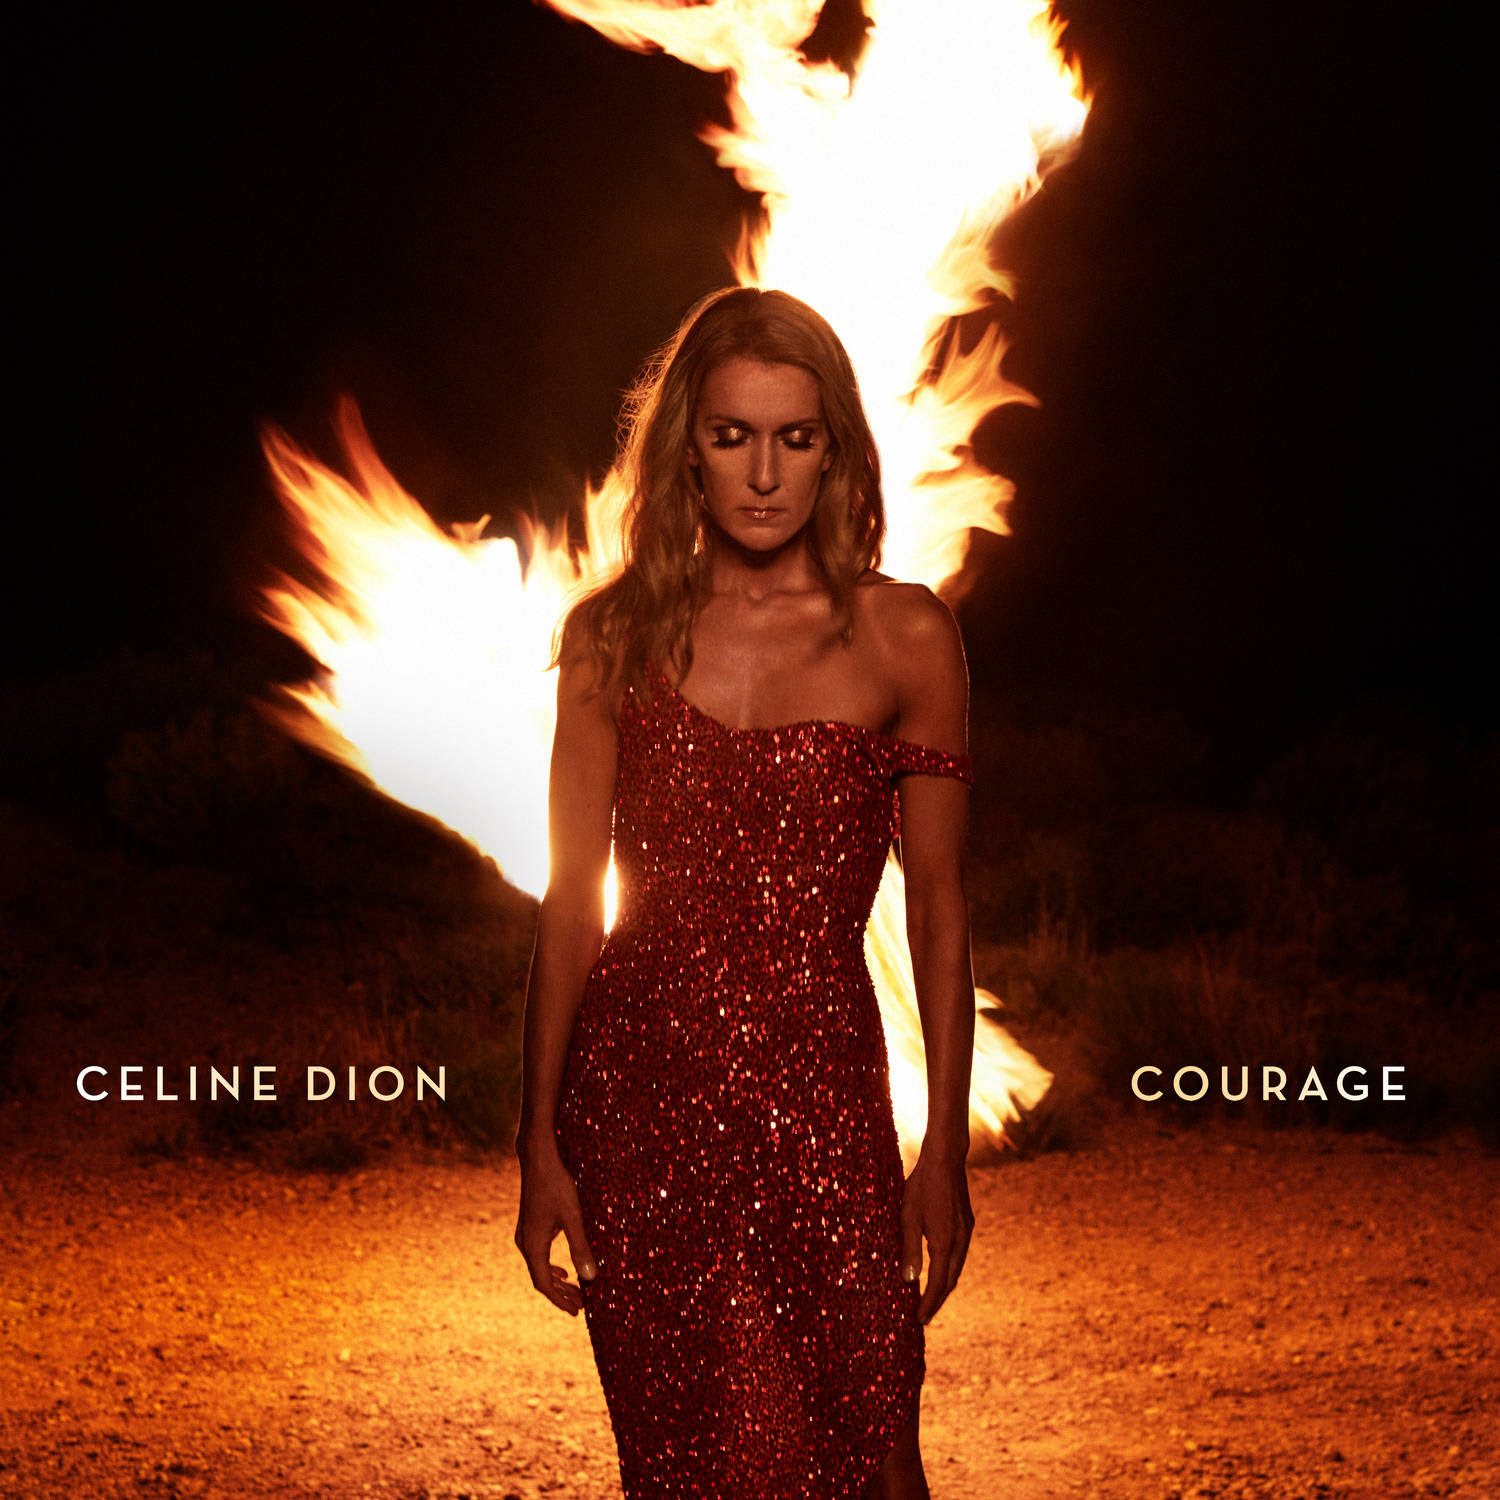 Courage by Celine Dion image